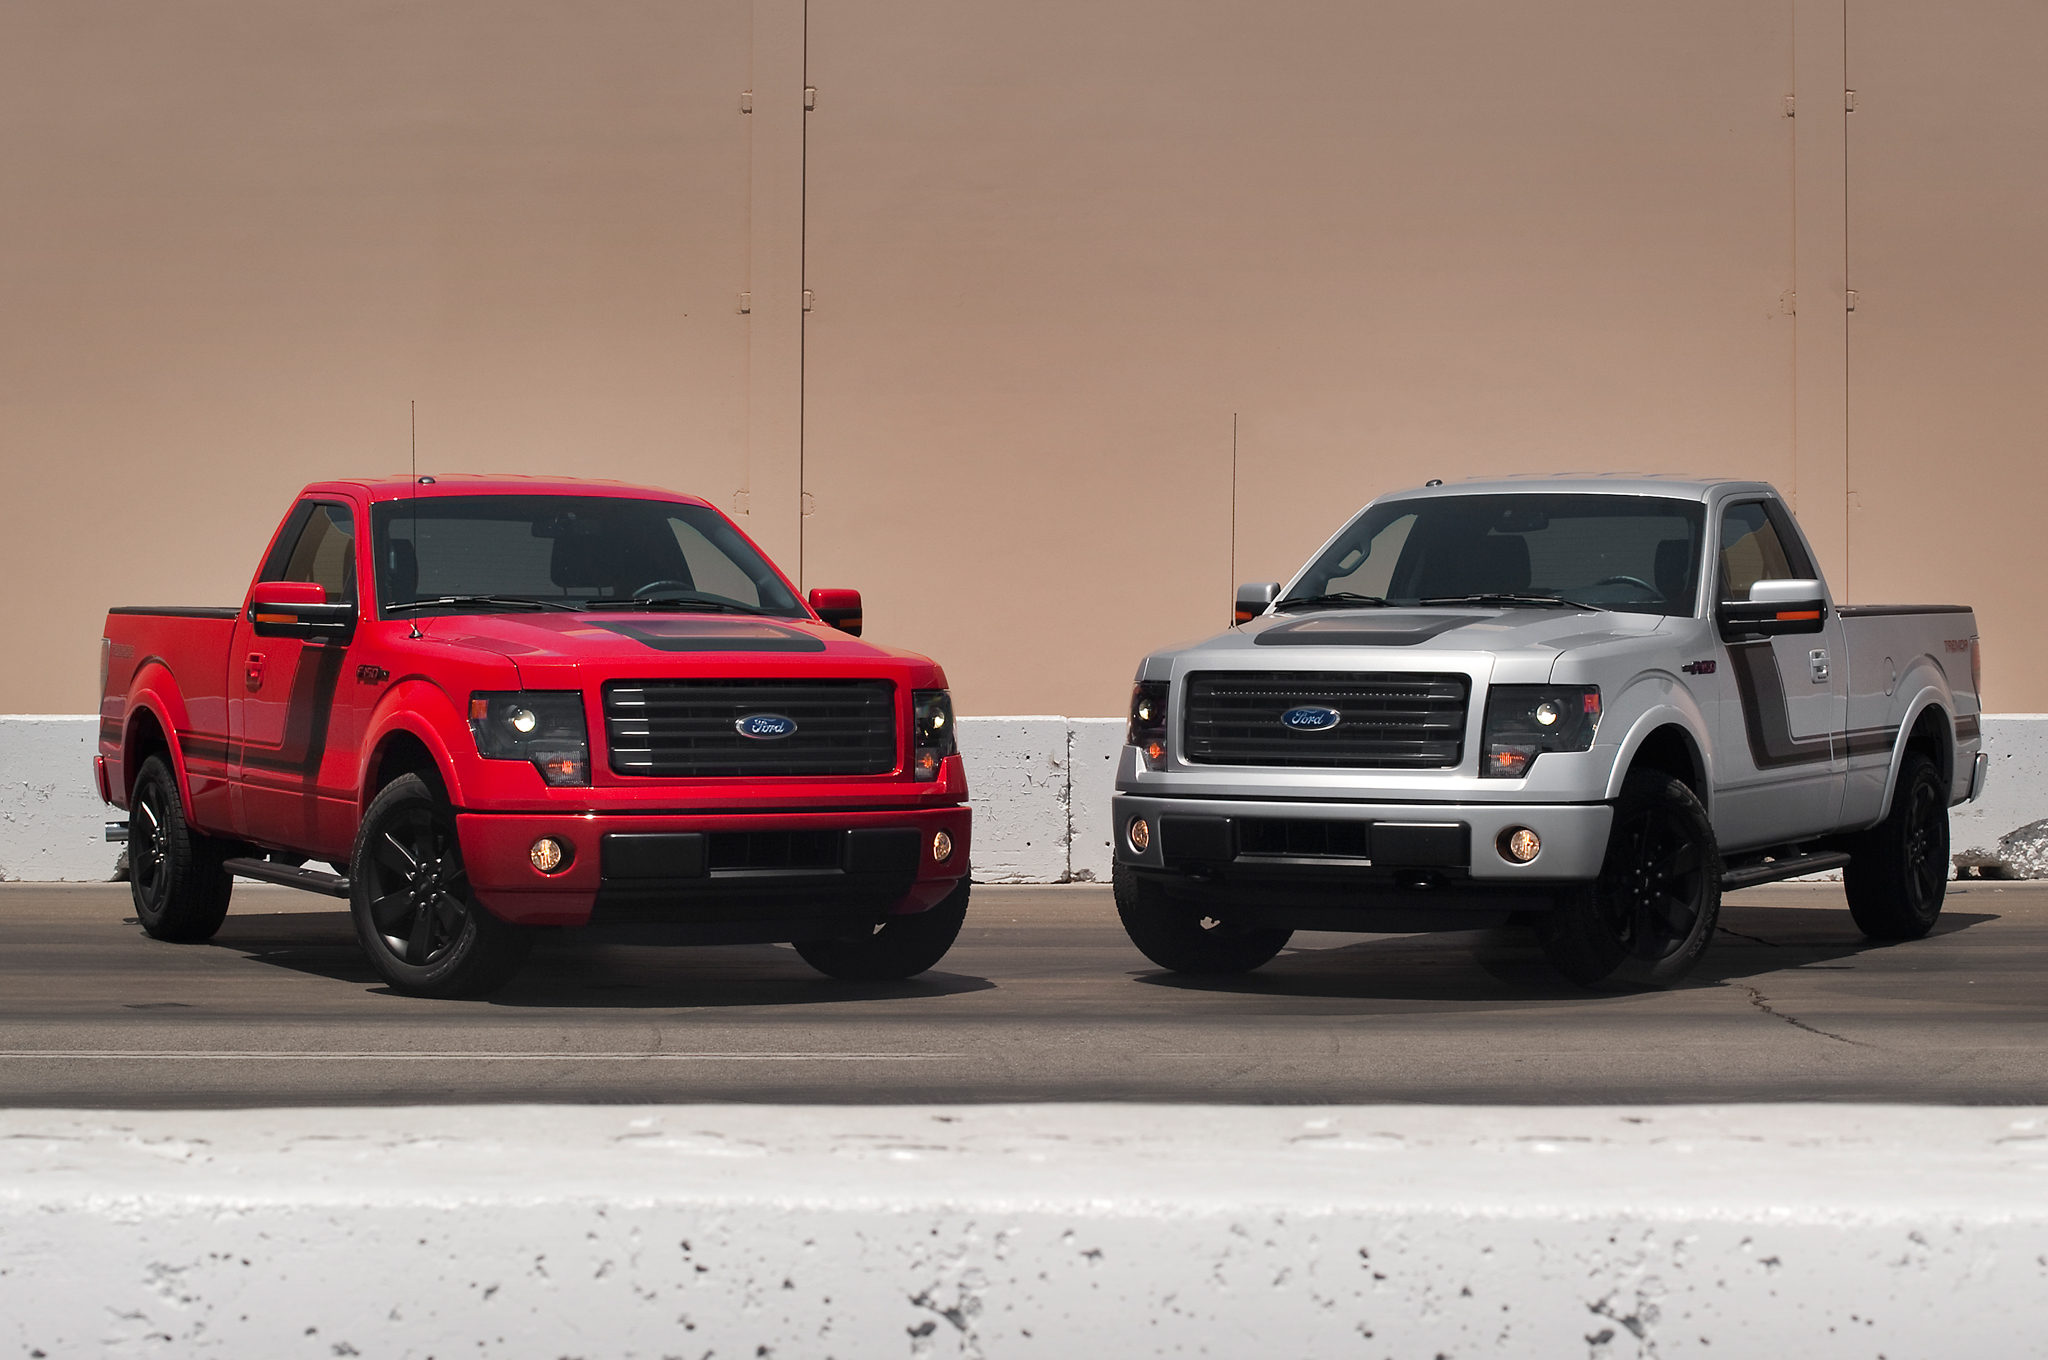 May 2014 Best-Sellers: Ford F-Series On Top, Camry Runs at Silverado